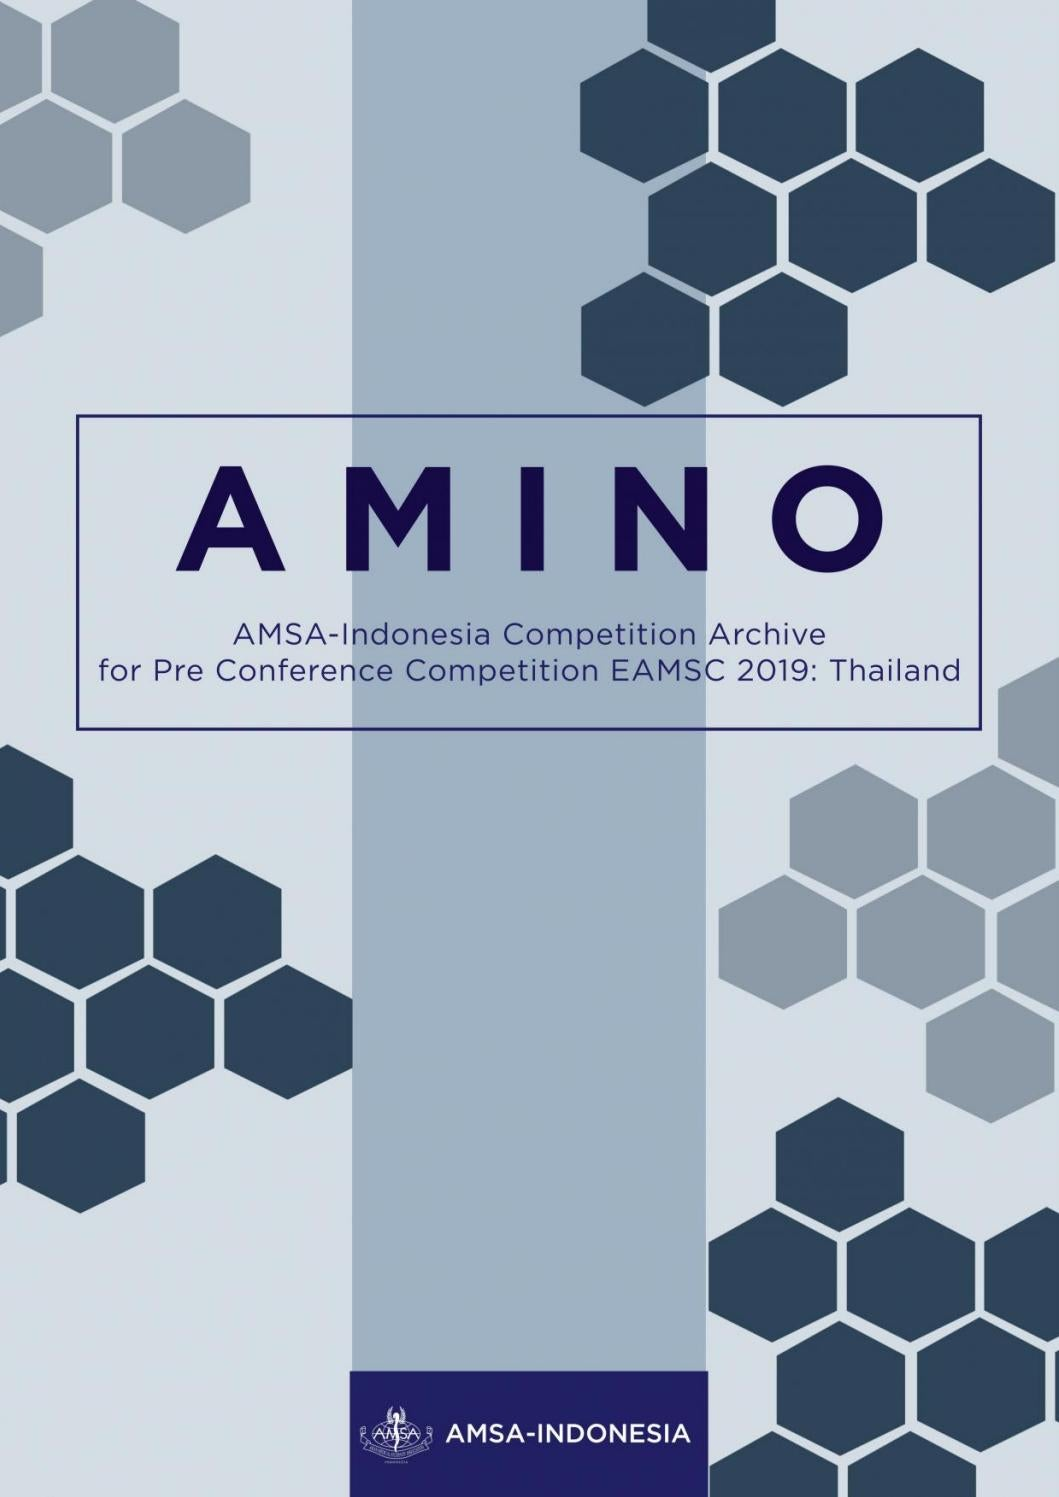 AMINO PCC EAMSC 2019: Thailand by AMSA-Indonesia - issuu